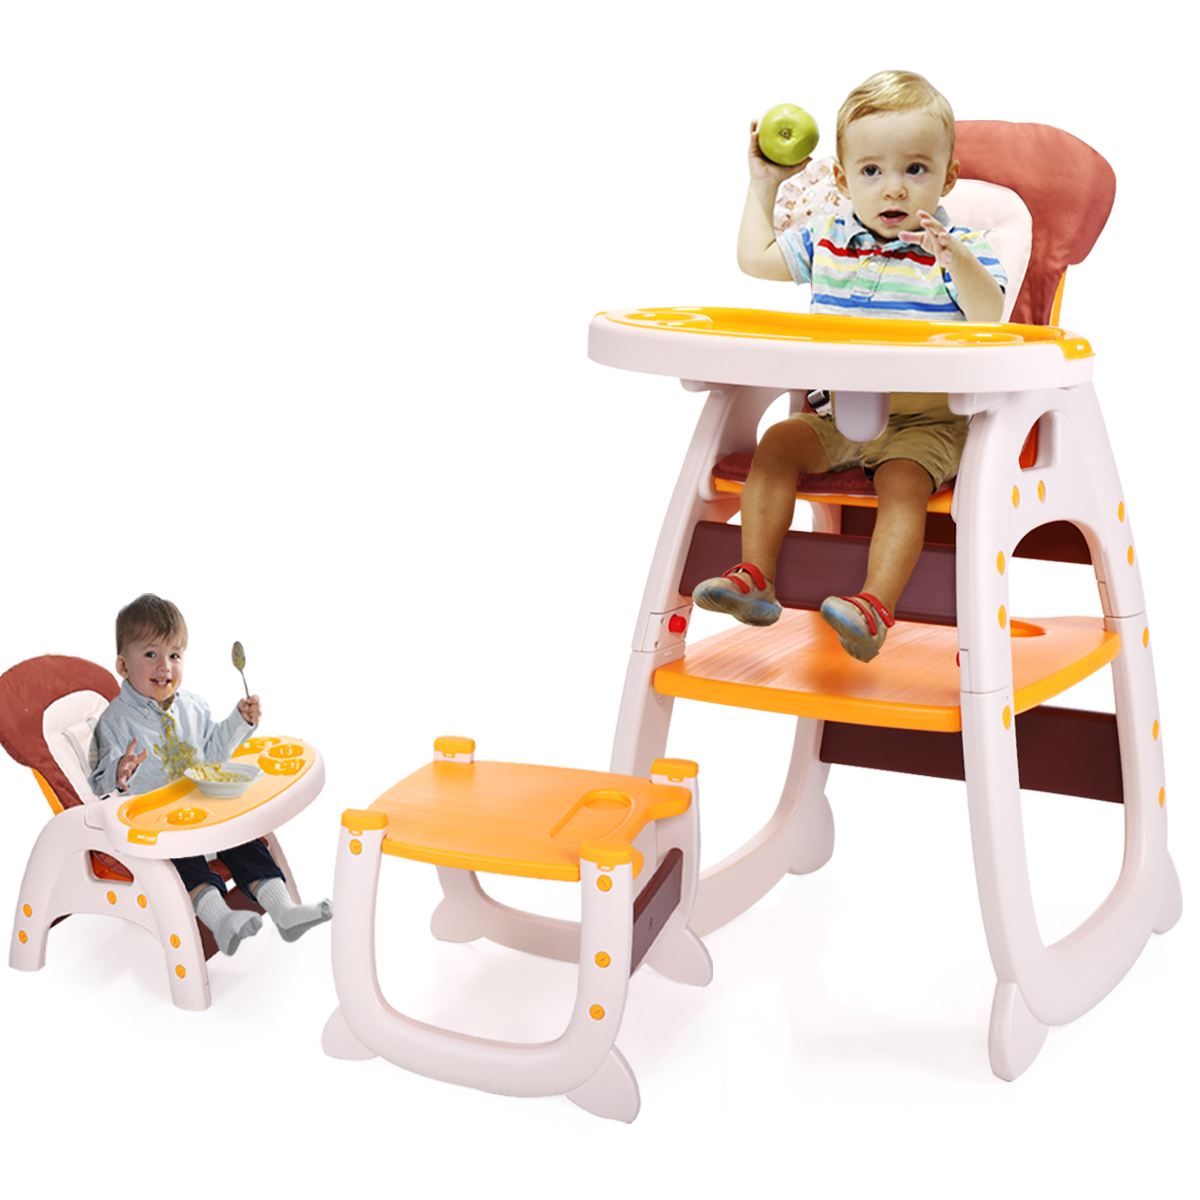 Lazymoon Yellow 3 in 1 Baby High Chair Convertible Play Table Seat Booster Infant Toddler Highchairs by Lazymoon